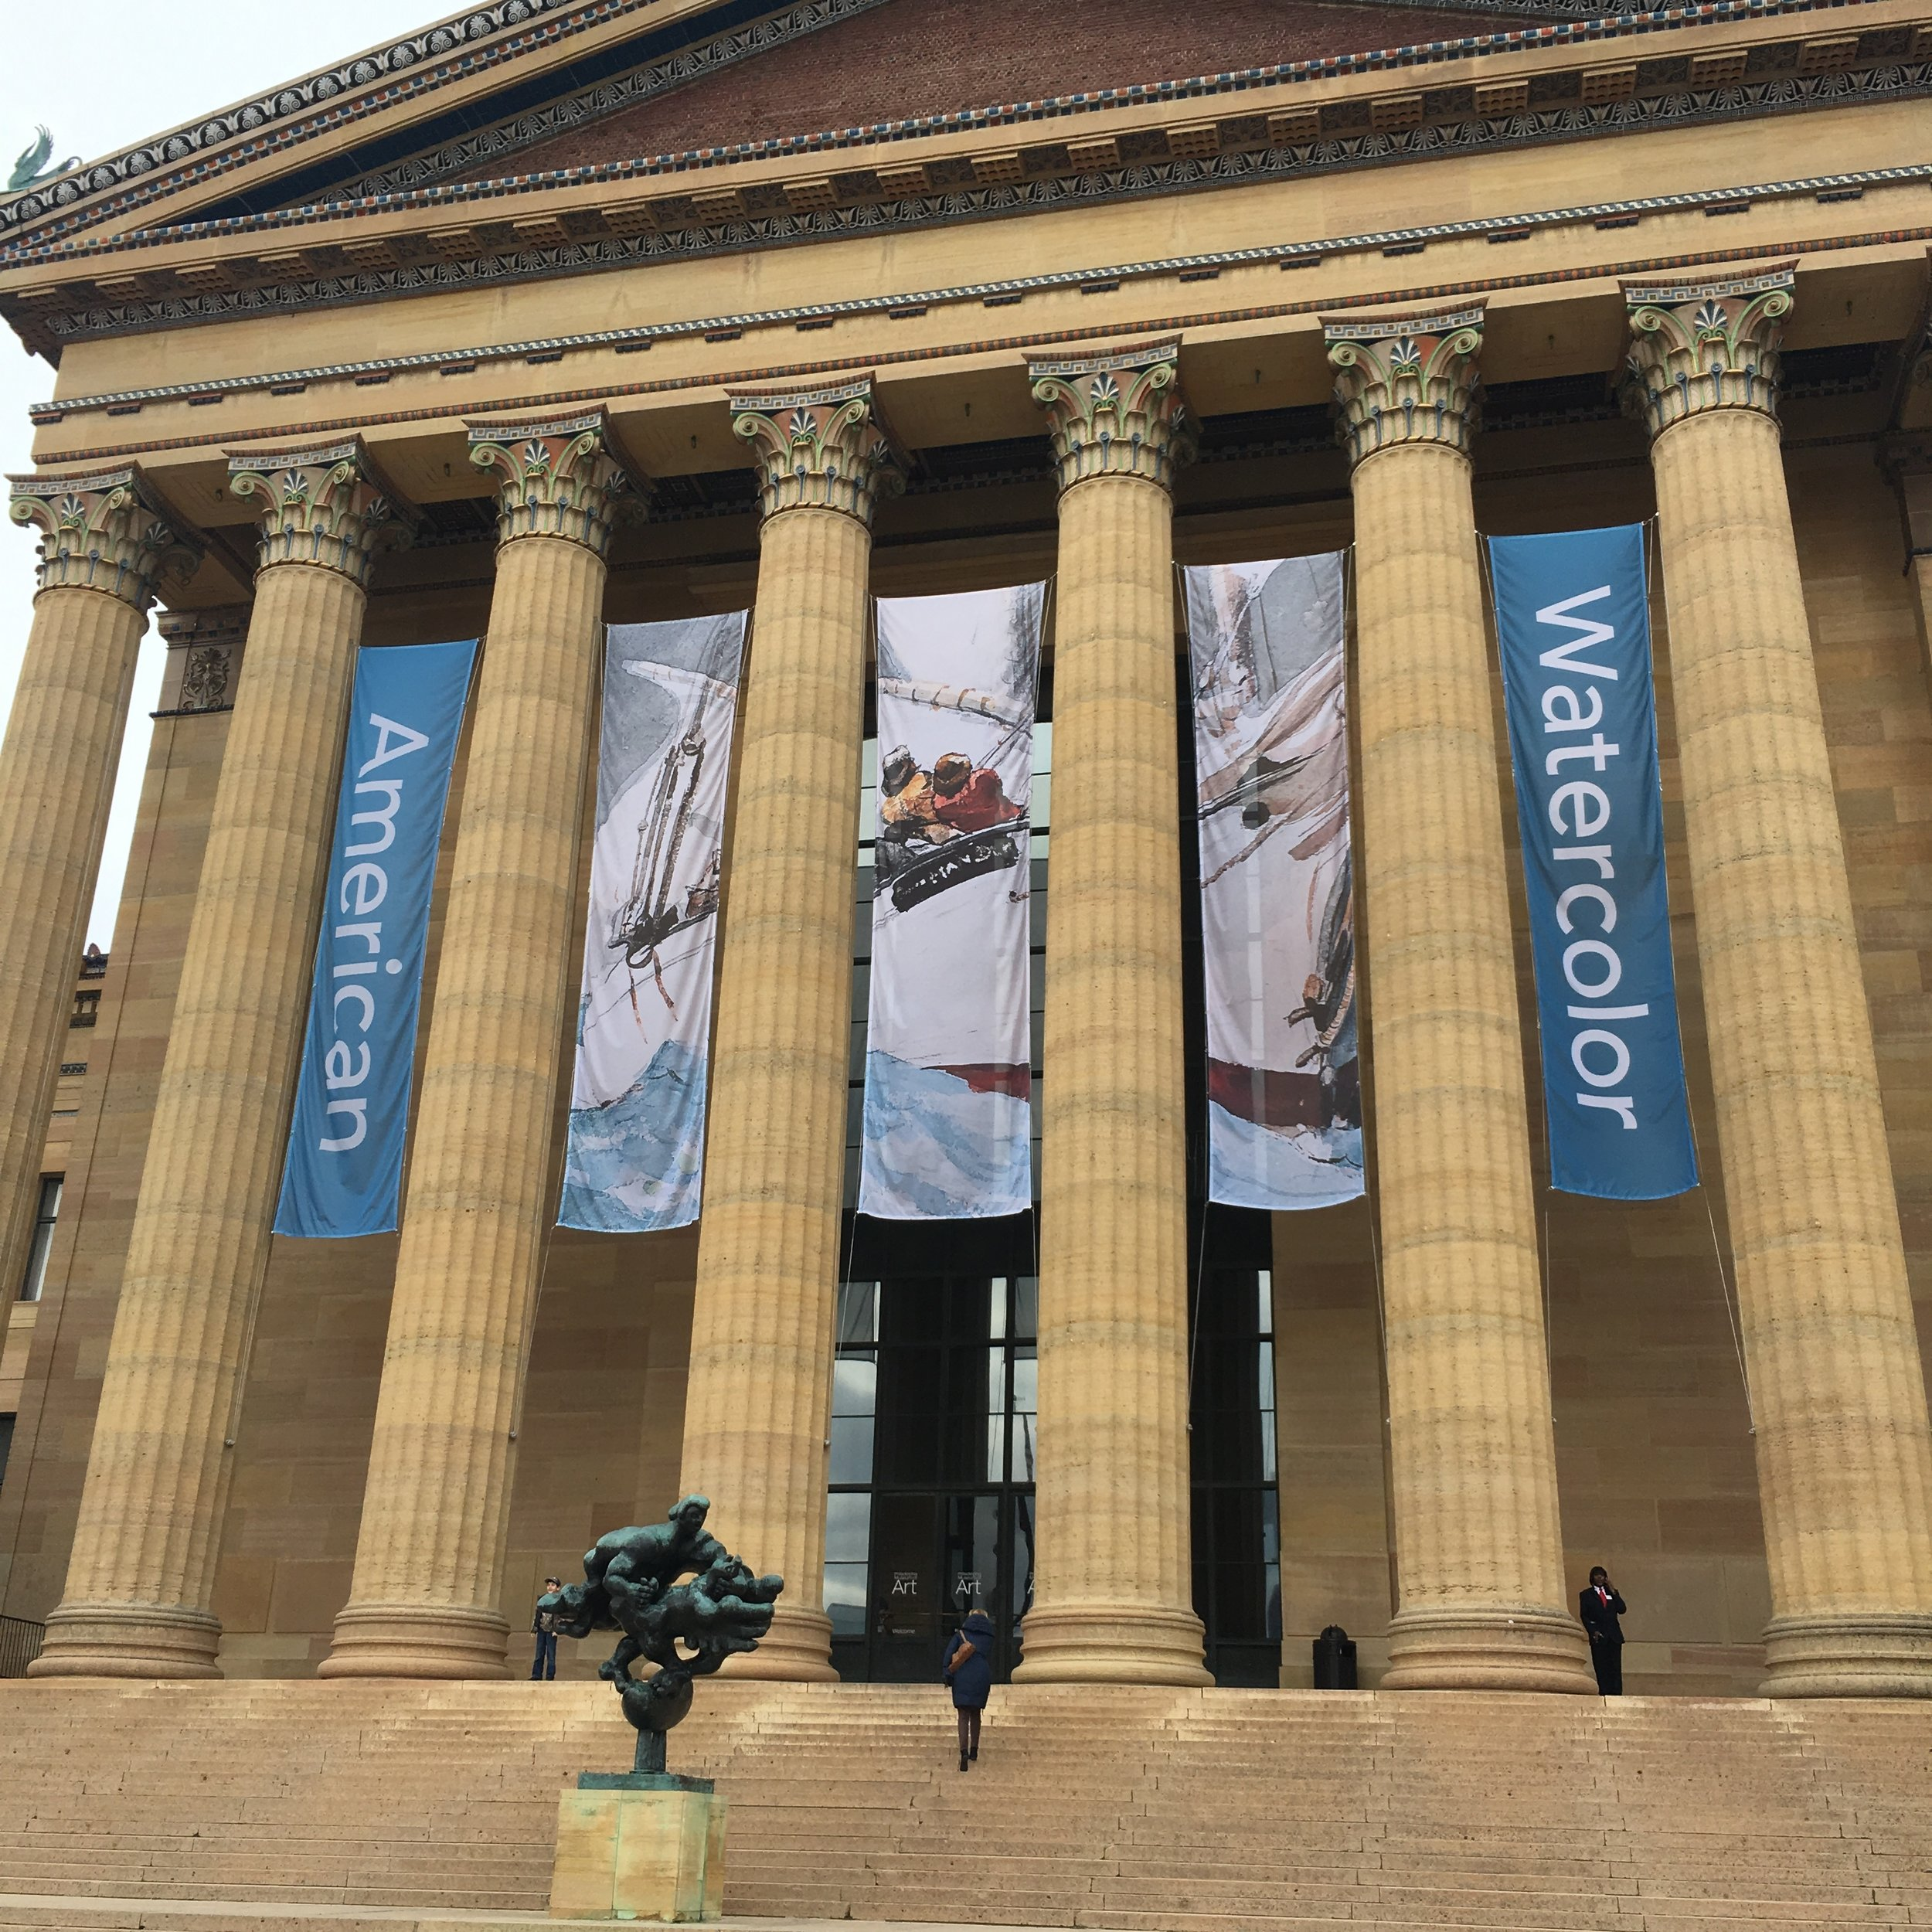 We climbed the Rocky steps and took in a bunch of history and culture at Philly museums.